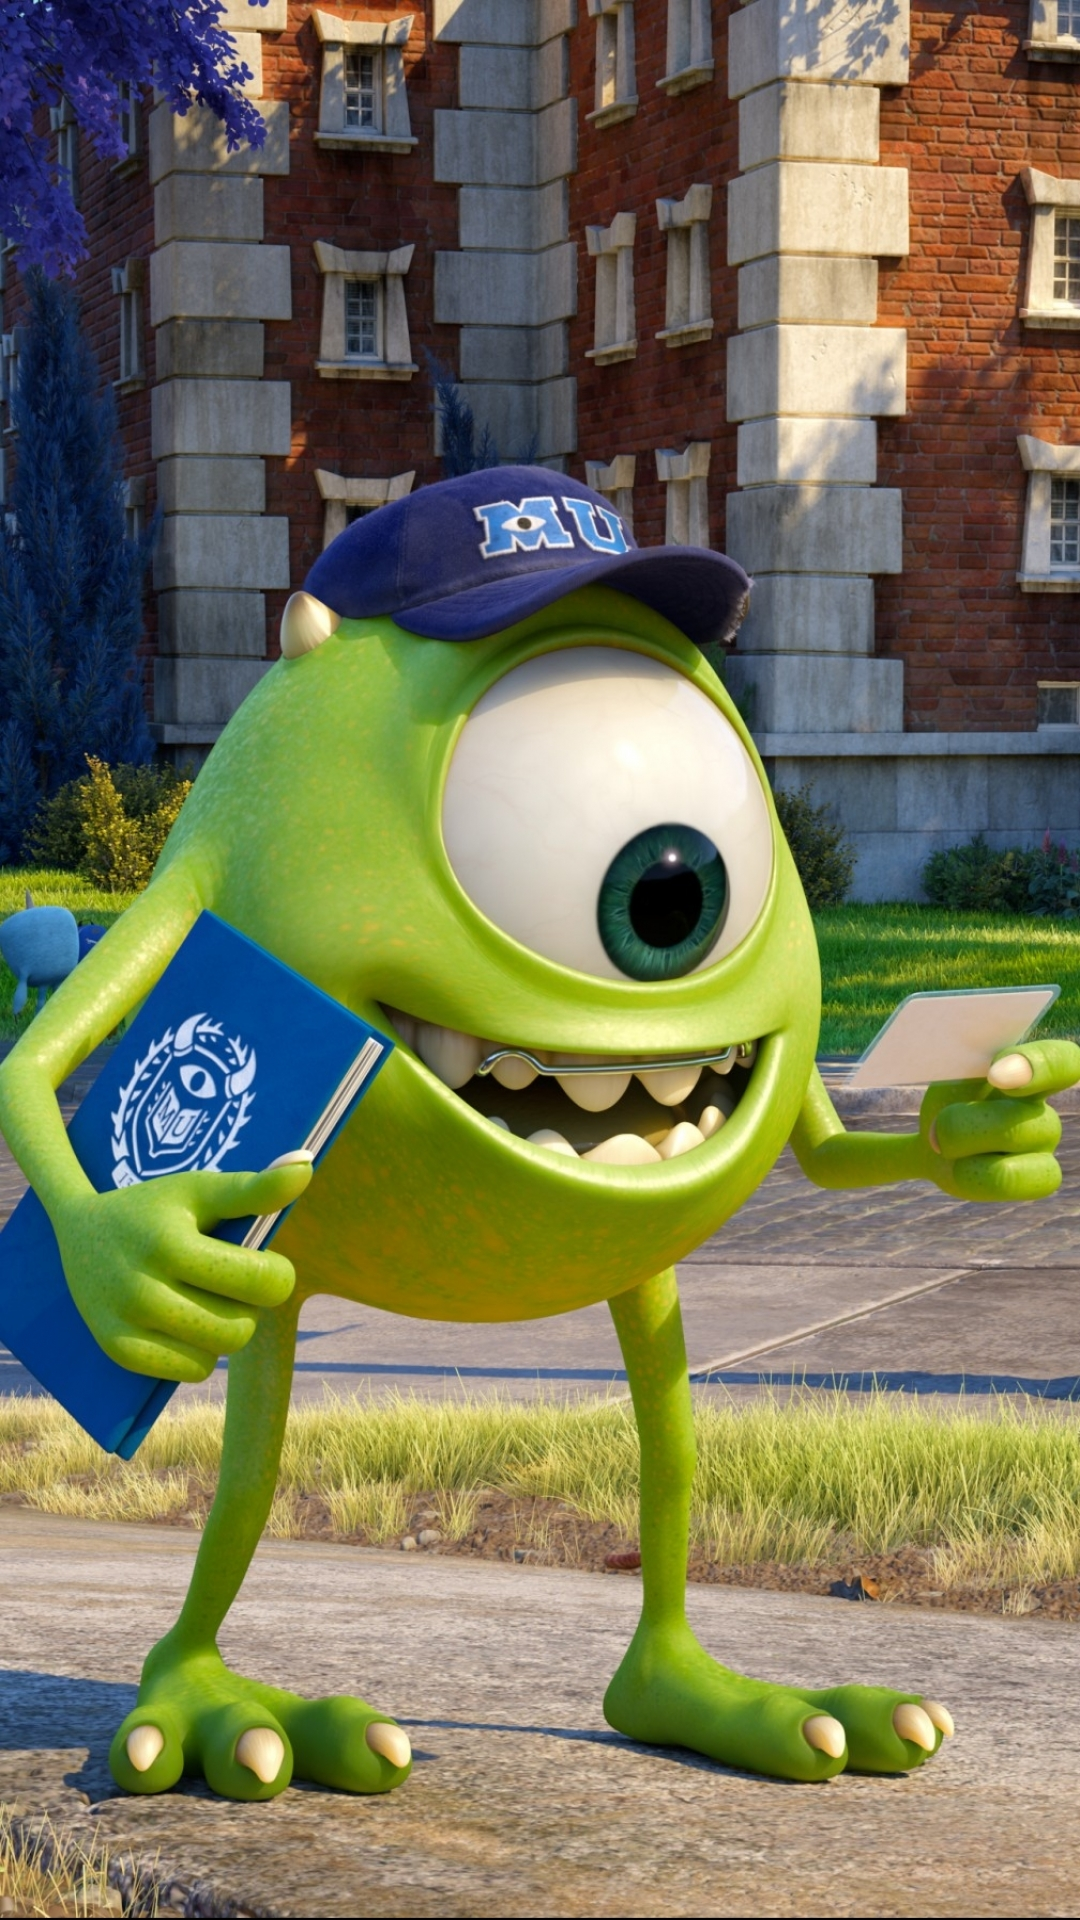 Wallpaper iphone monster university - Movie Monsters University Mike Wazowski Wallpaper 375089